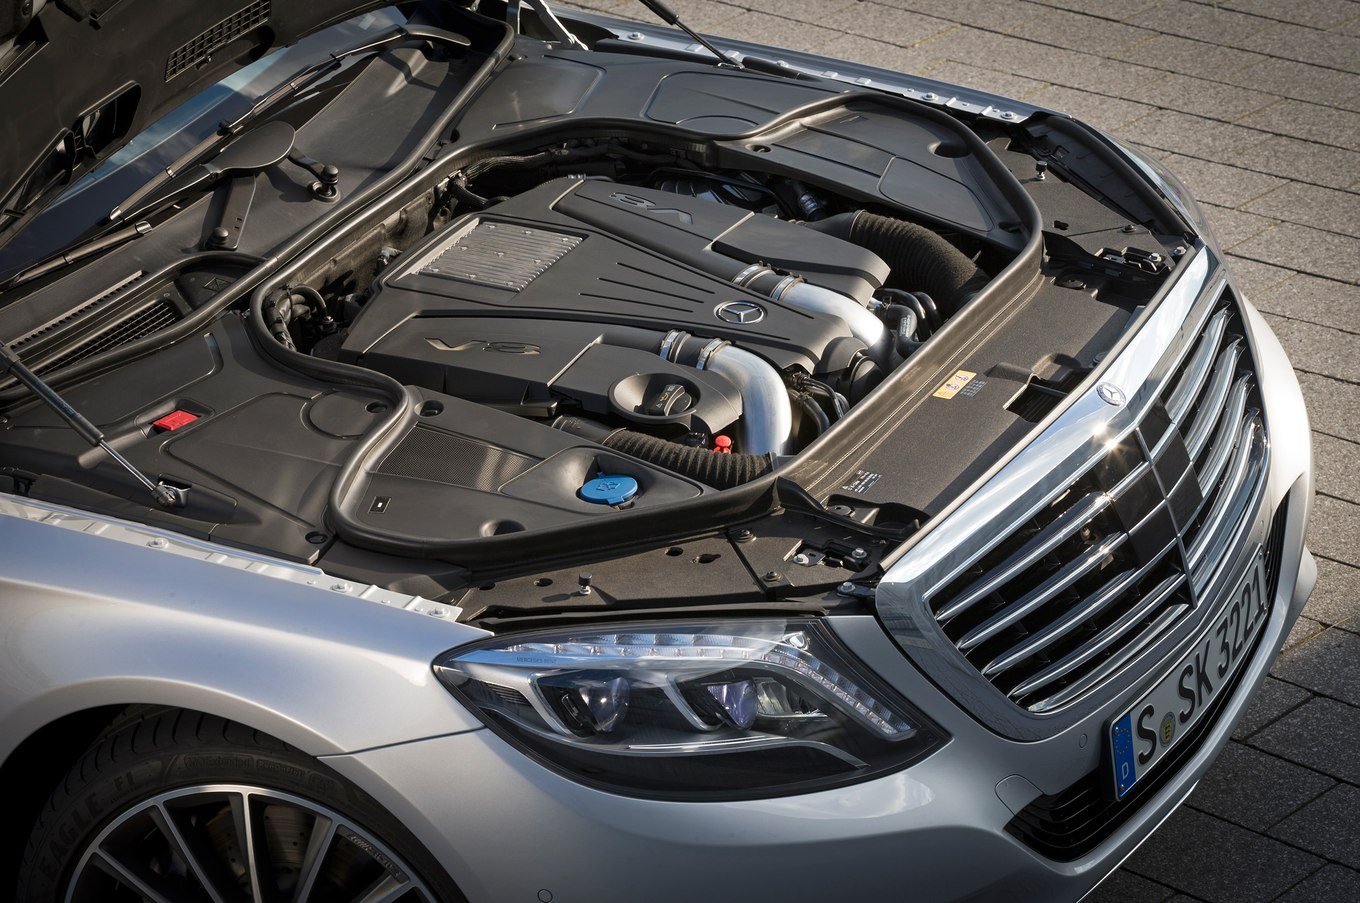 Mercedes-benz engine photo - 9